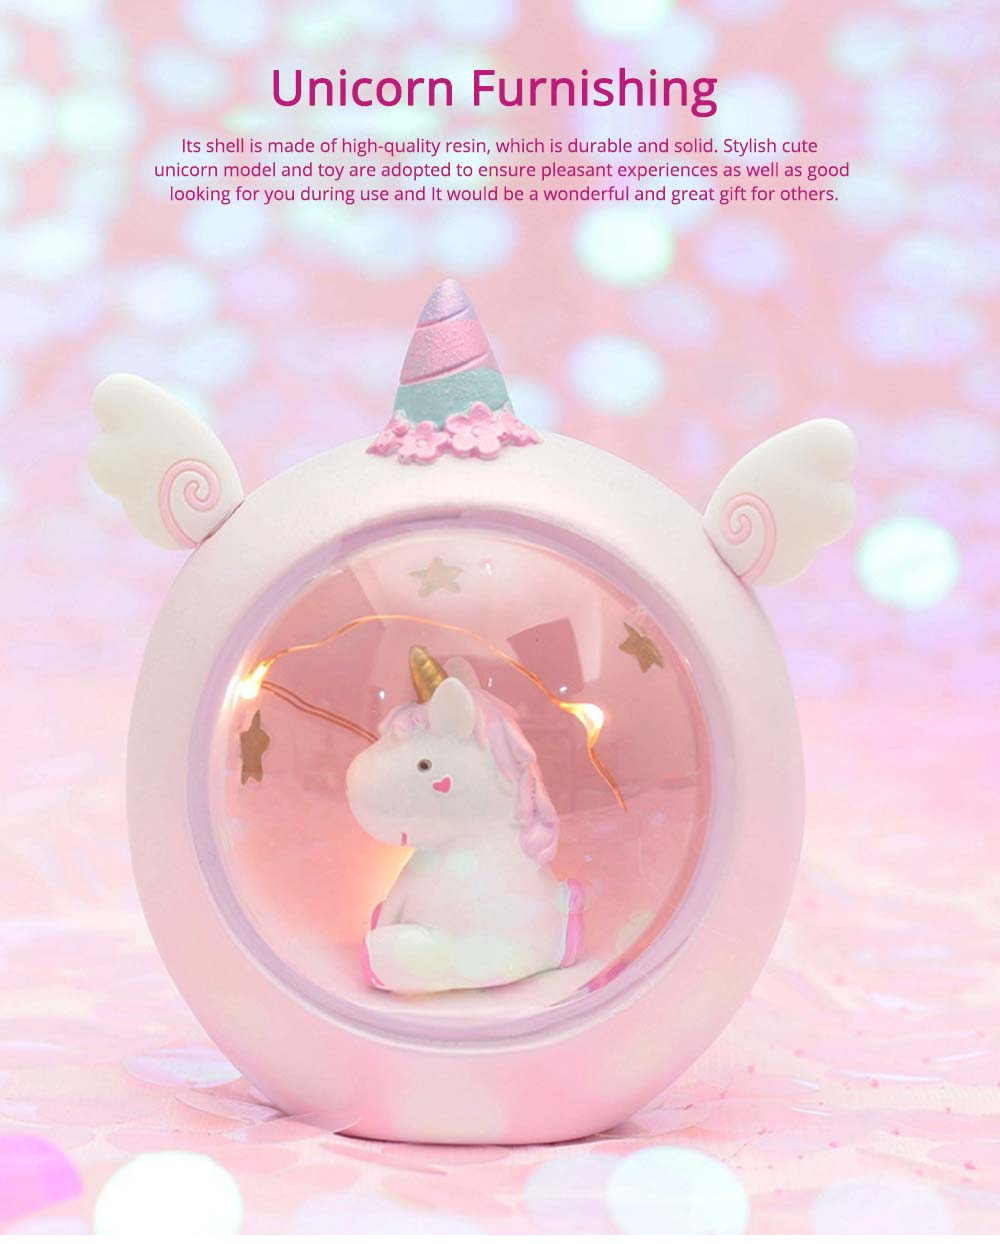 Creative Cute Unicorn Furnishings Home Decor, Durable Resin Shell New Year Birthday Present for Friends Ladies 8